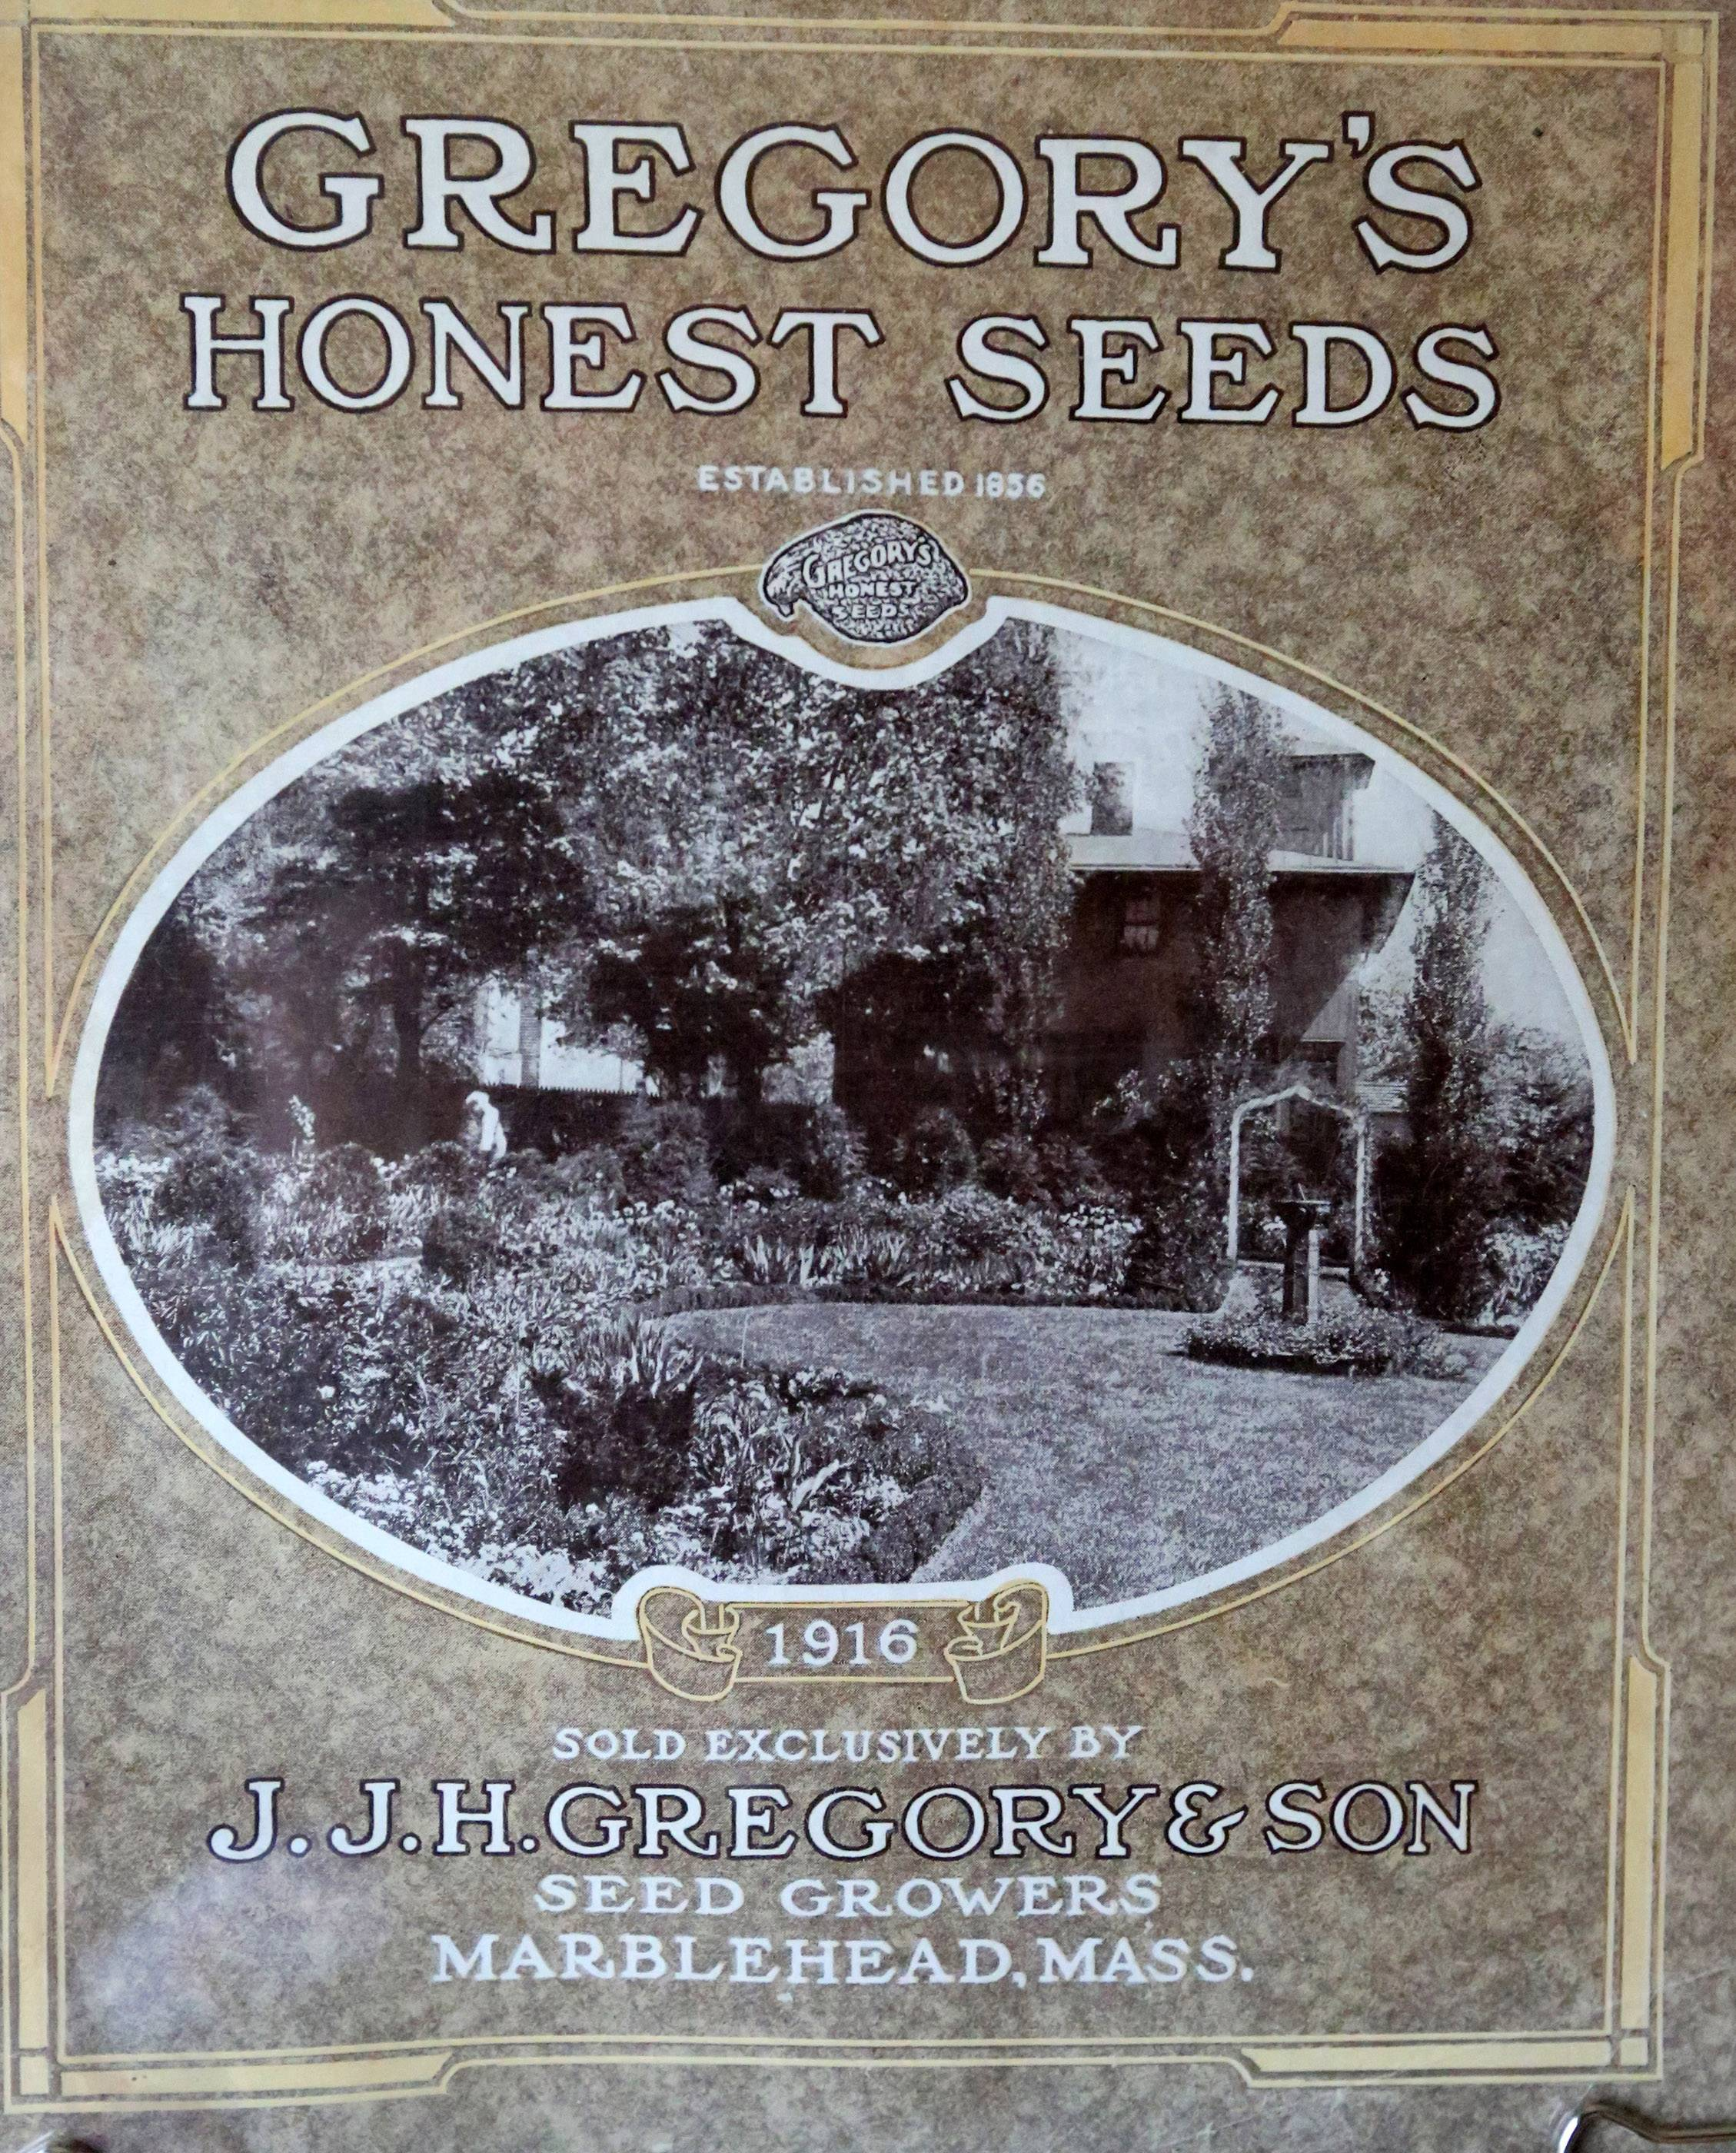 The products featured in this 1916 catalog were sold exclusively by Gregory's Honest Seeds.